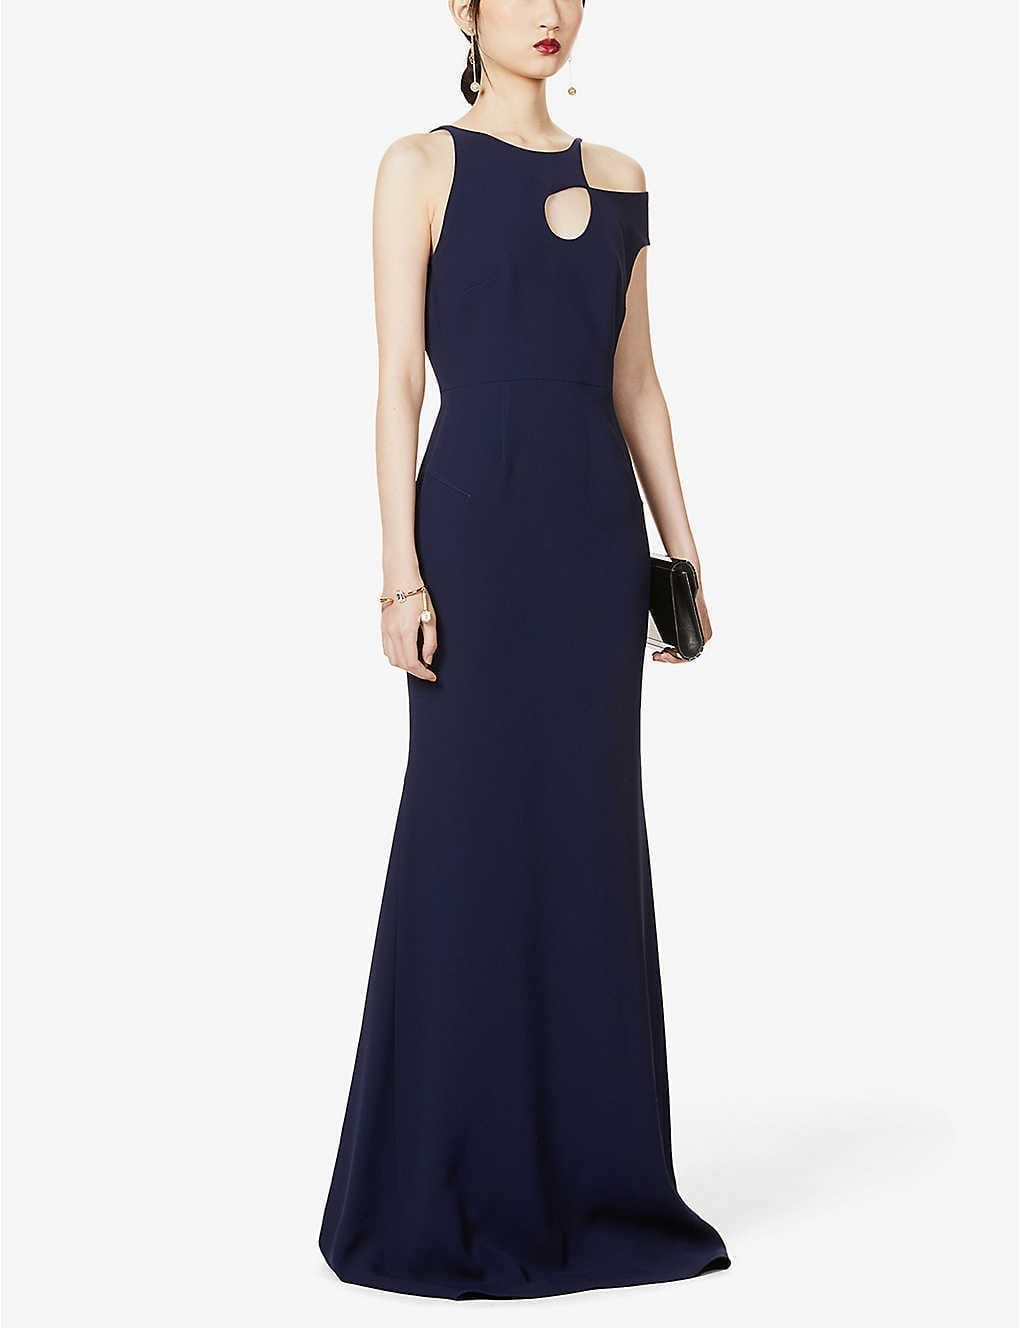 ROLAND MOURET Galata Cut-out Crepe Gown